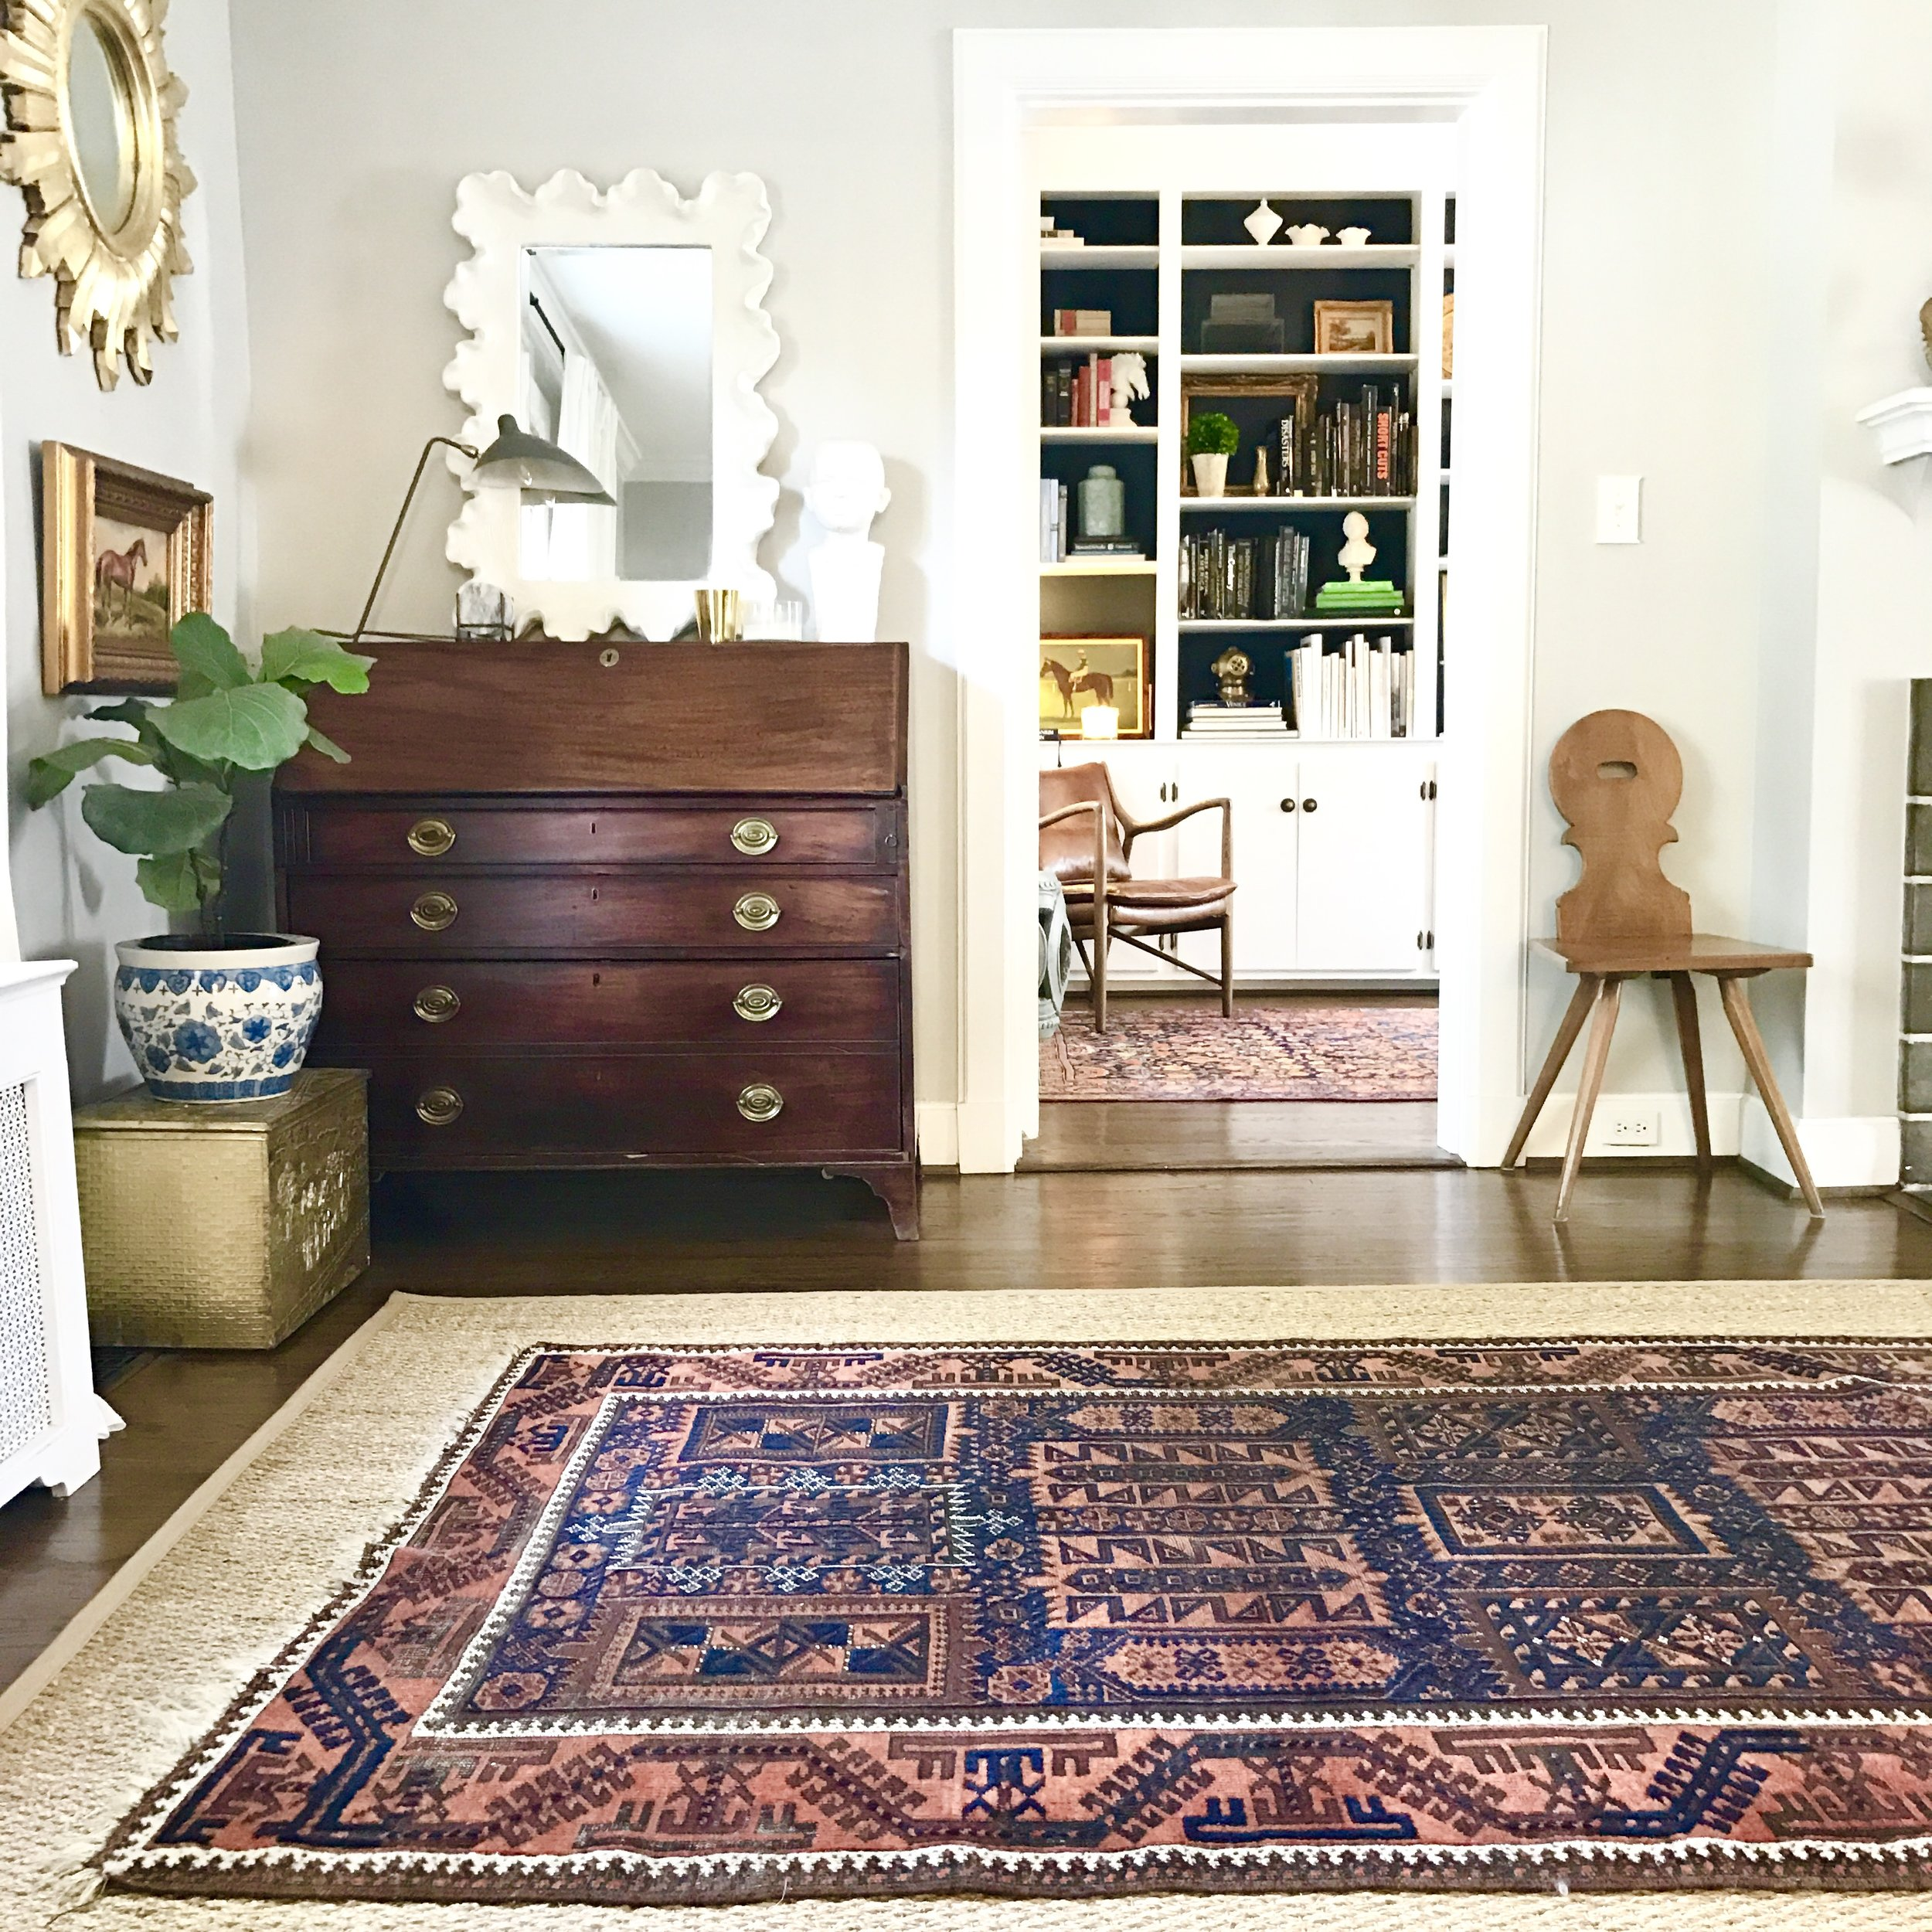 Rugs - We are collectors of vintage, hand-woven rugs, sourced from all over the world and curated with you in mind. We hope you'll connect with them the way we do - one storied piece at a time.